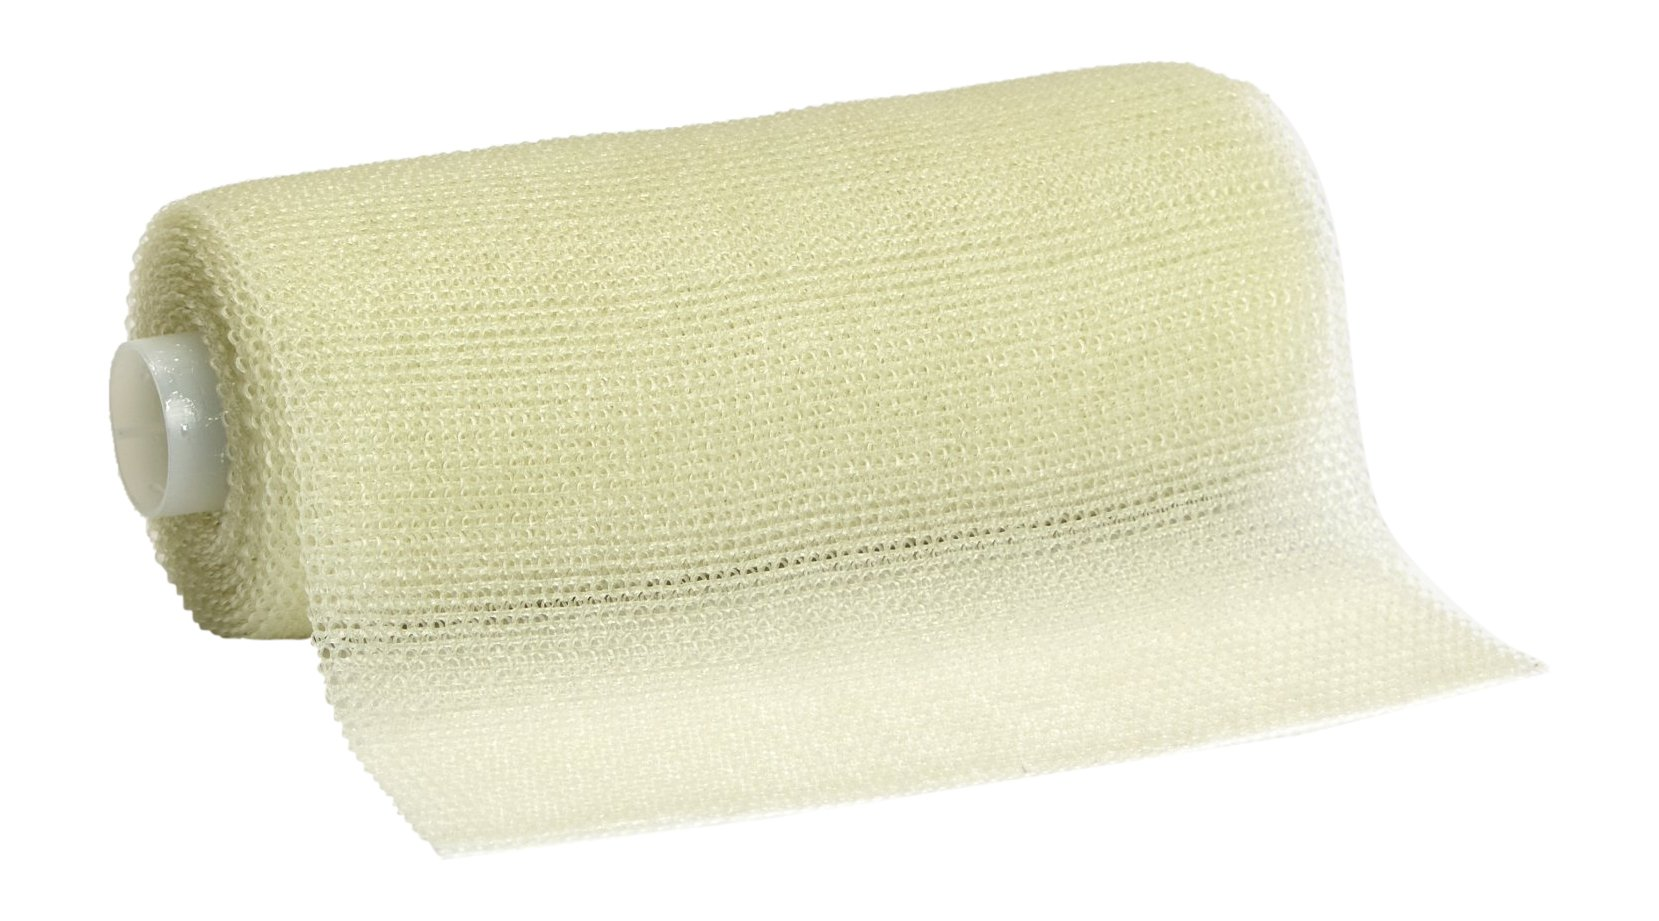 3M Scotchcast 82005 Plus Casting Tape, White 5'' x 4 Yard (Pack of 10)